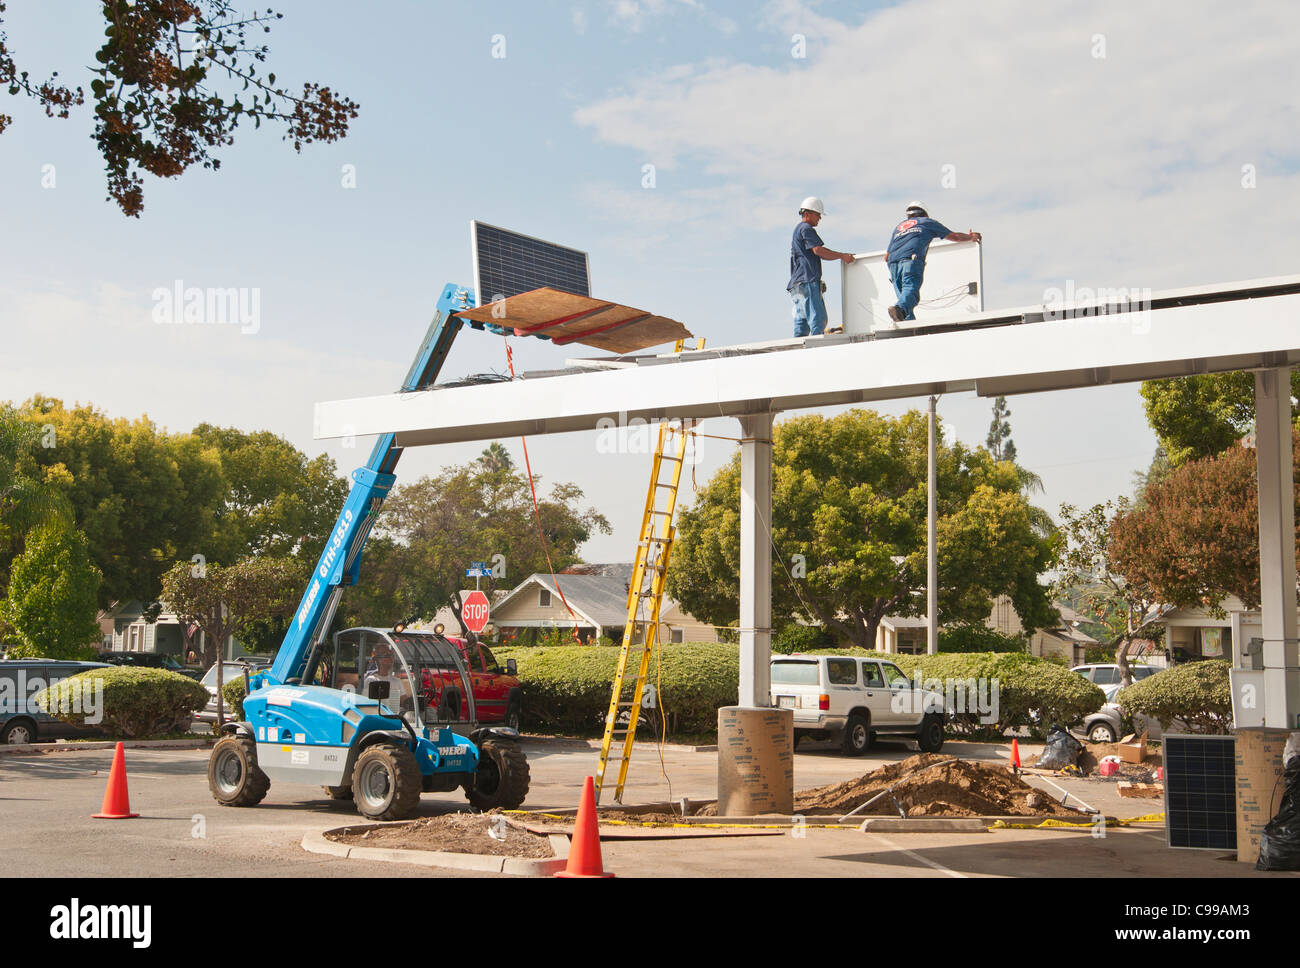 Solar Panels being installed on the roof of a parking pavilion at the Fullerton Public Library in California. - Stock Image